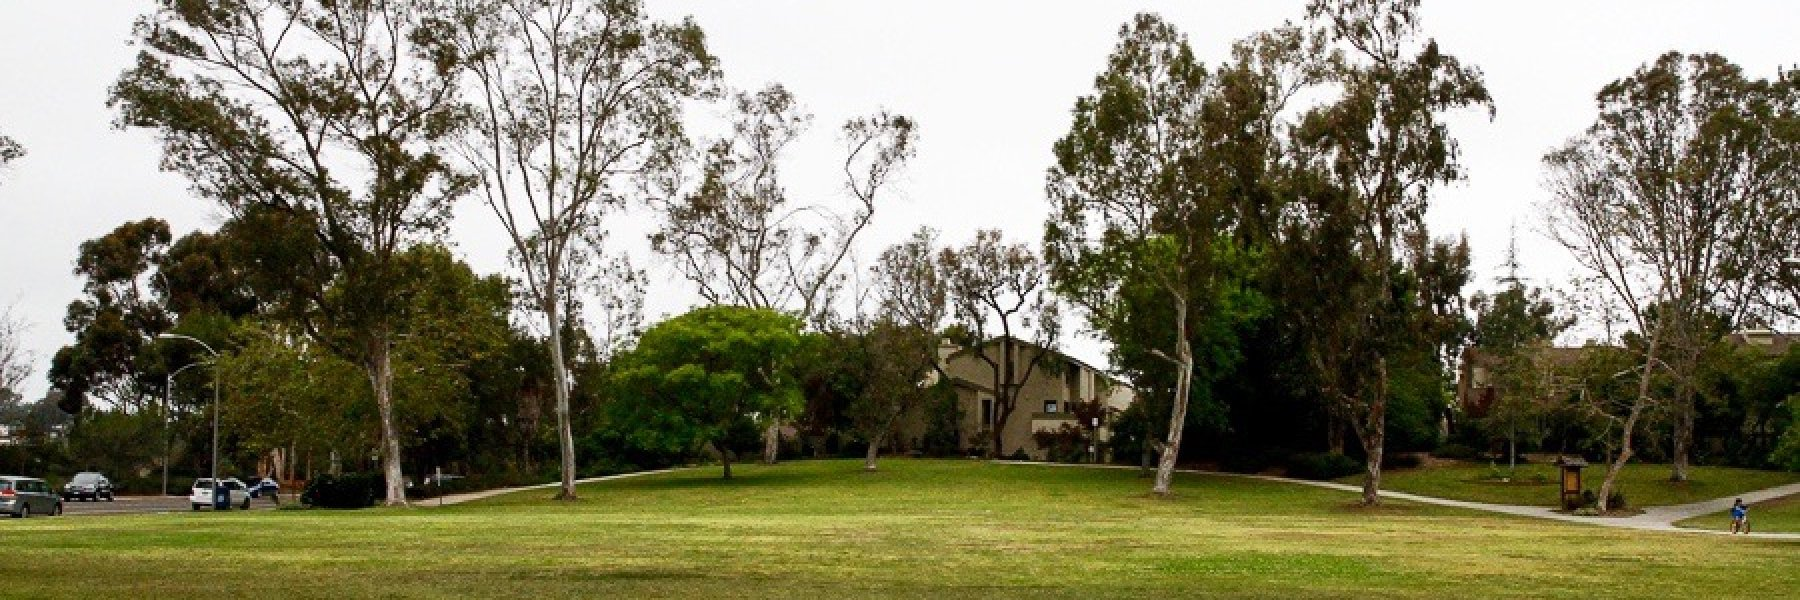 Southpointe is a community of attached homes in La Jolla California